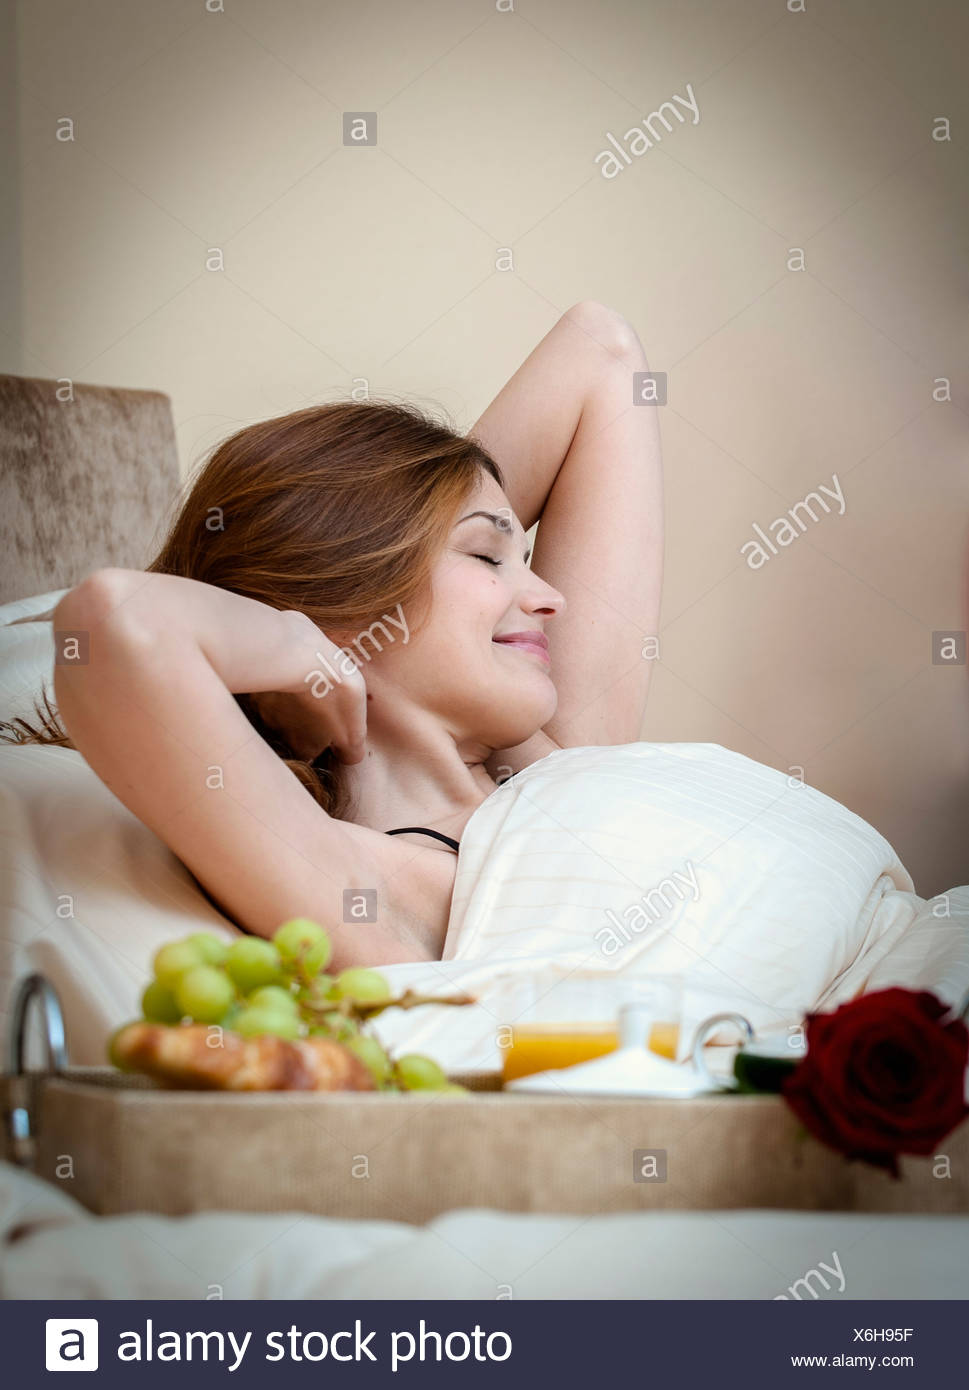 Woman waking up to breakfast in bed - Stock Image